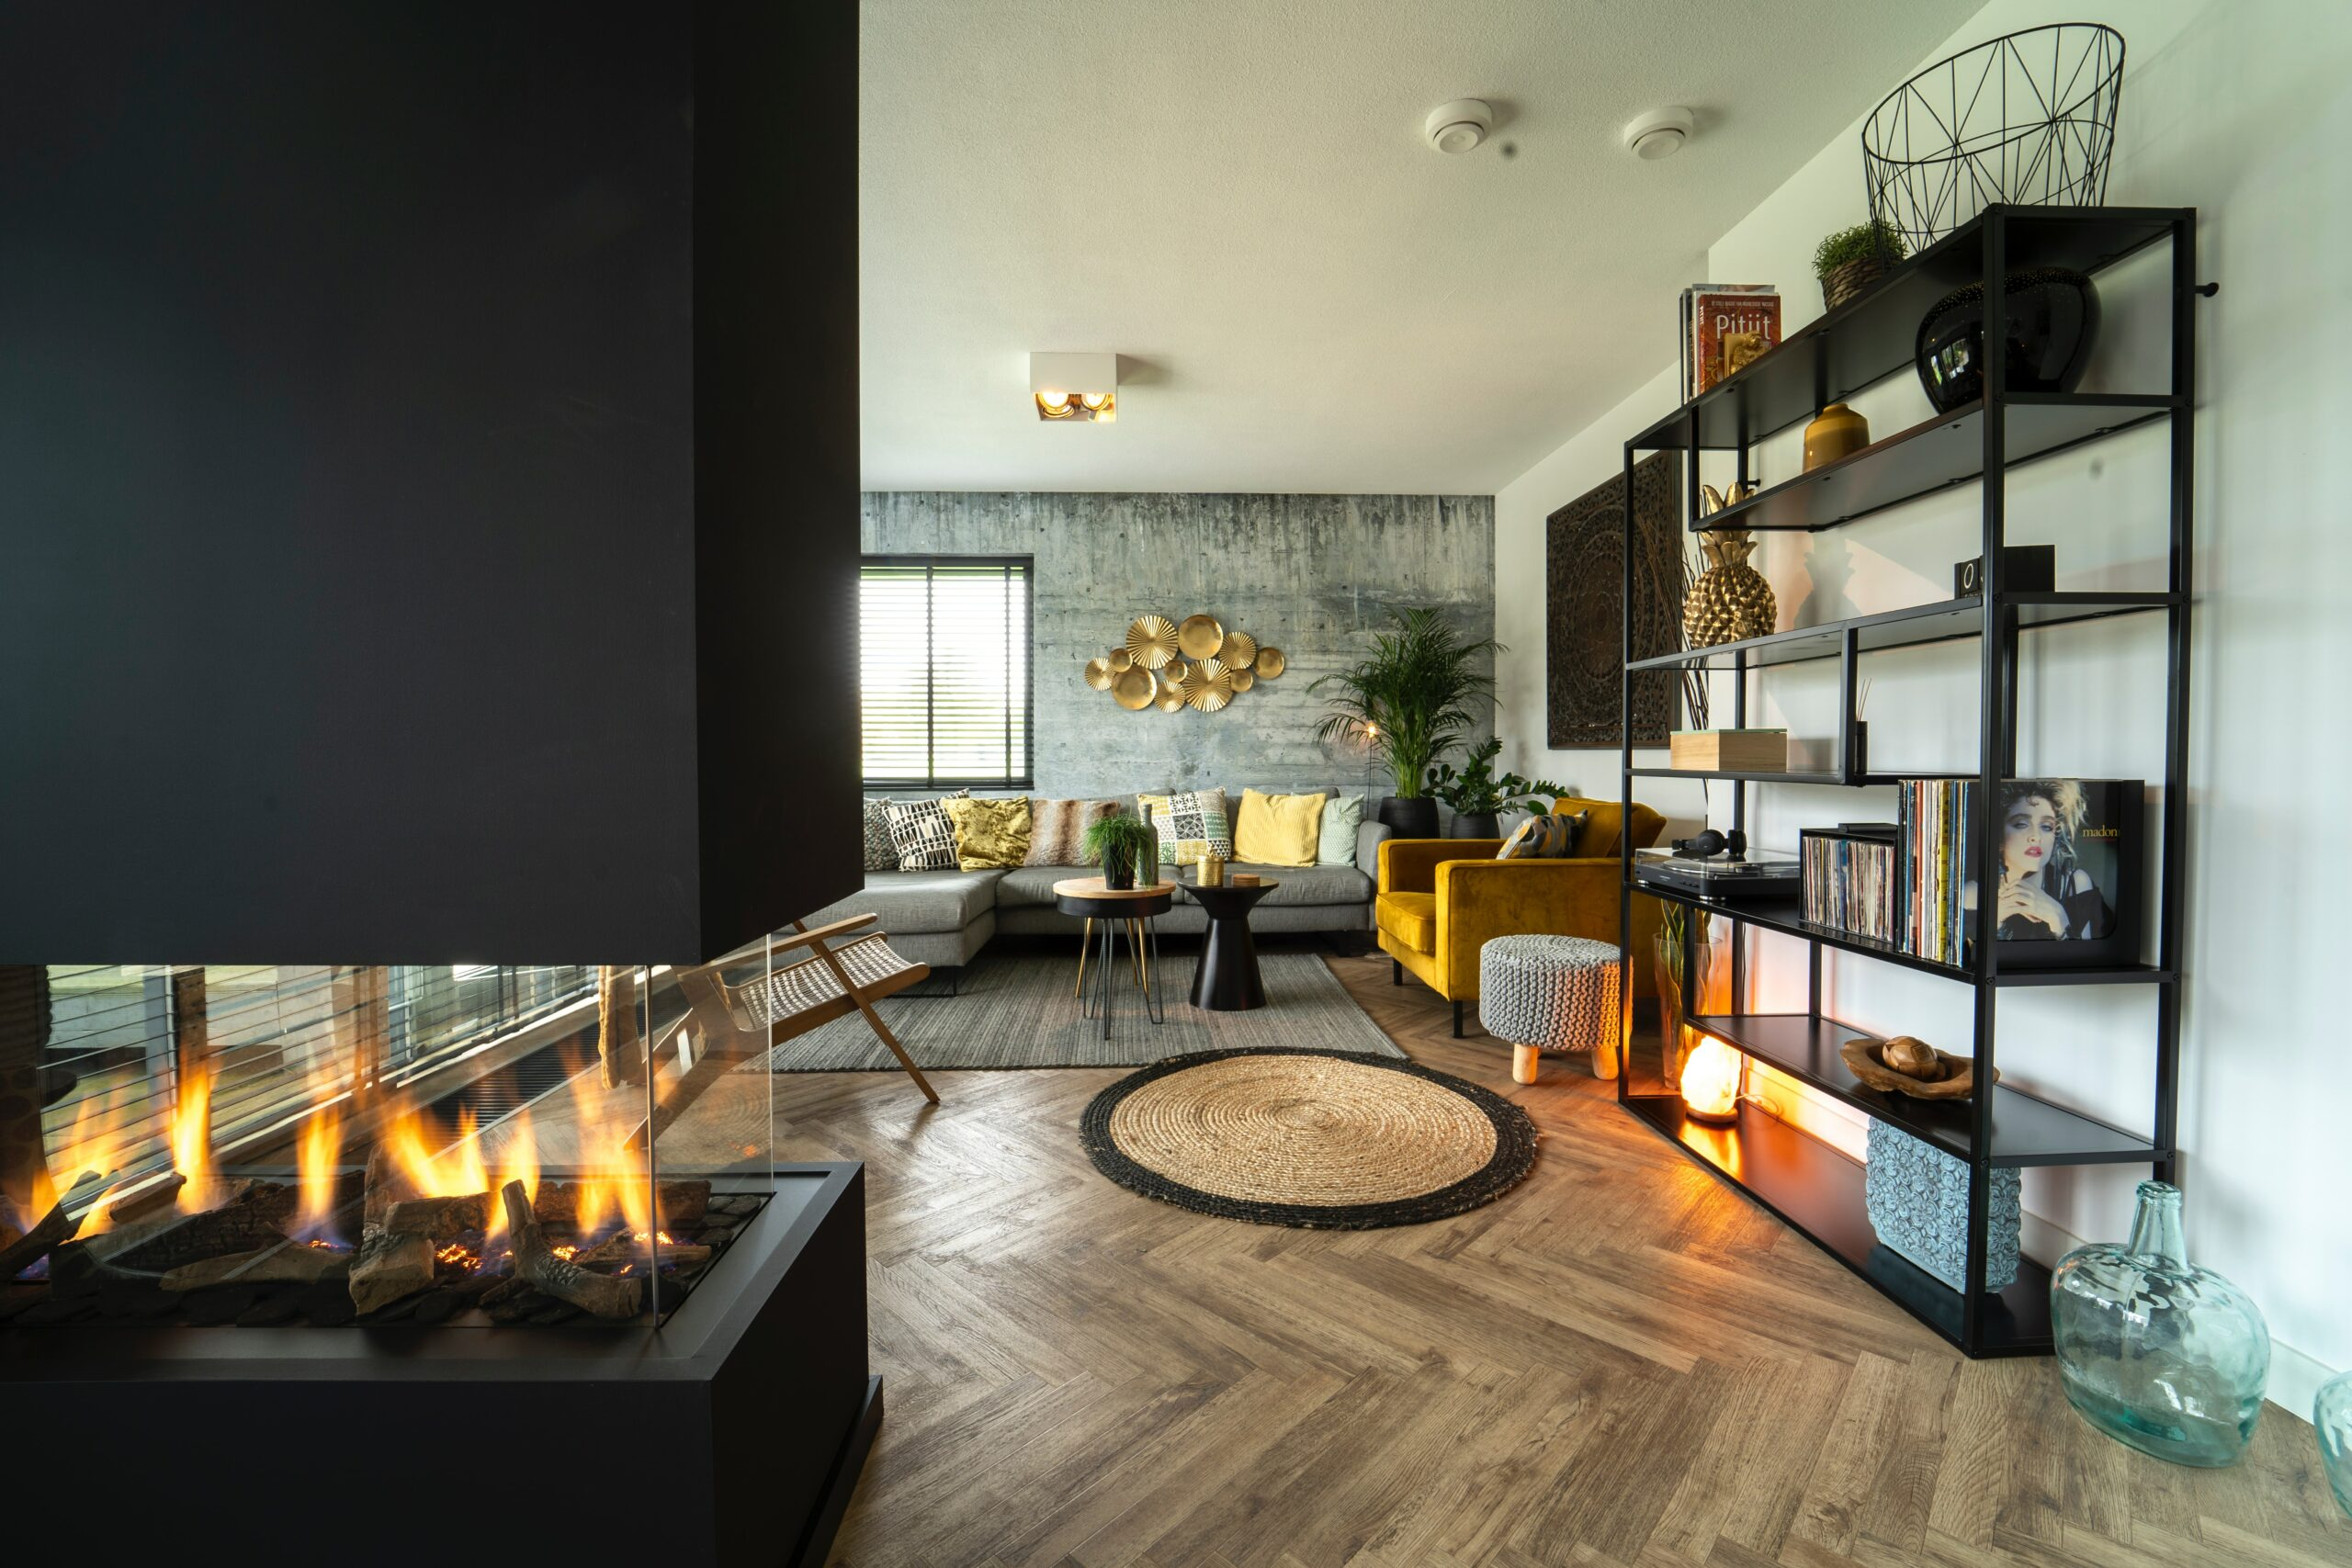 How efficient are different types of fireplaces